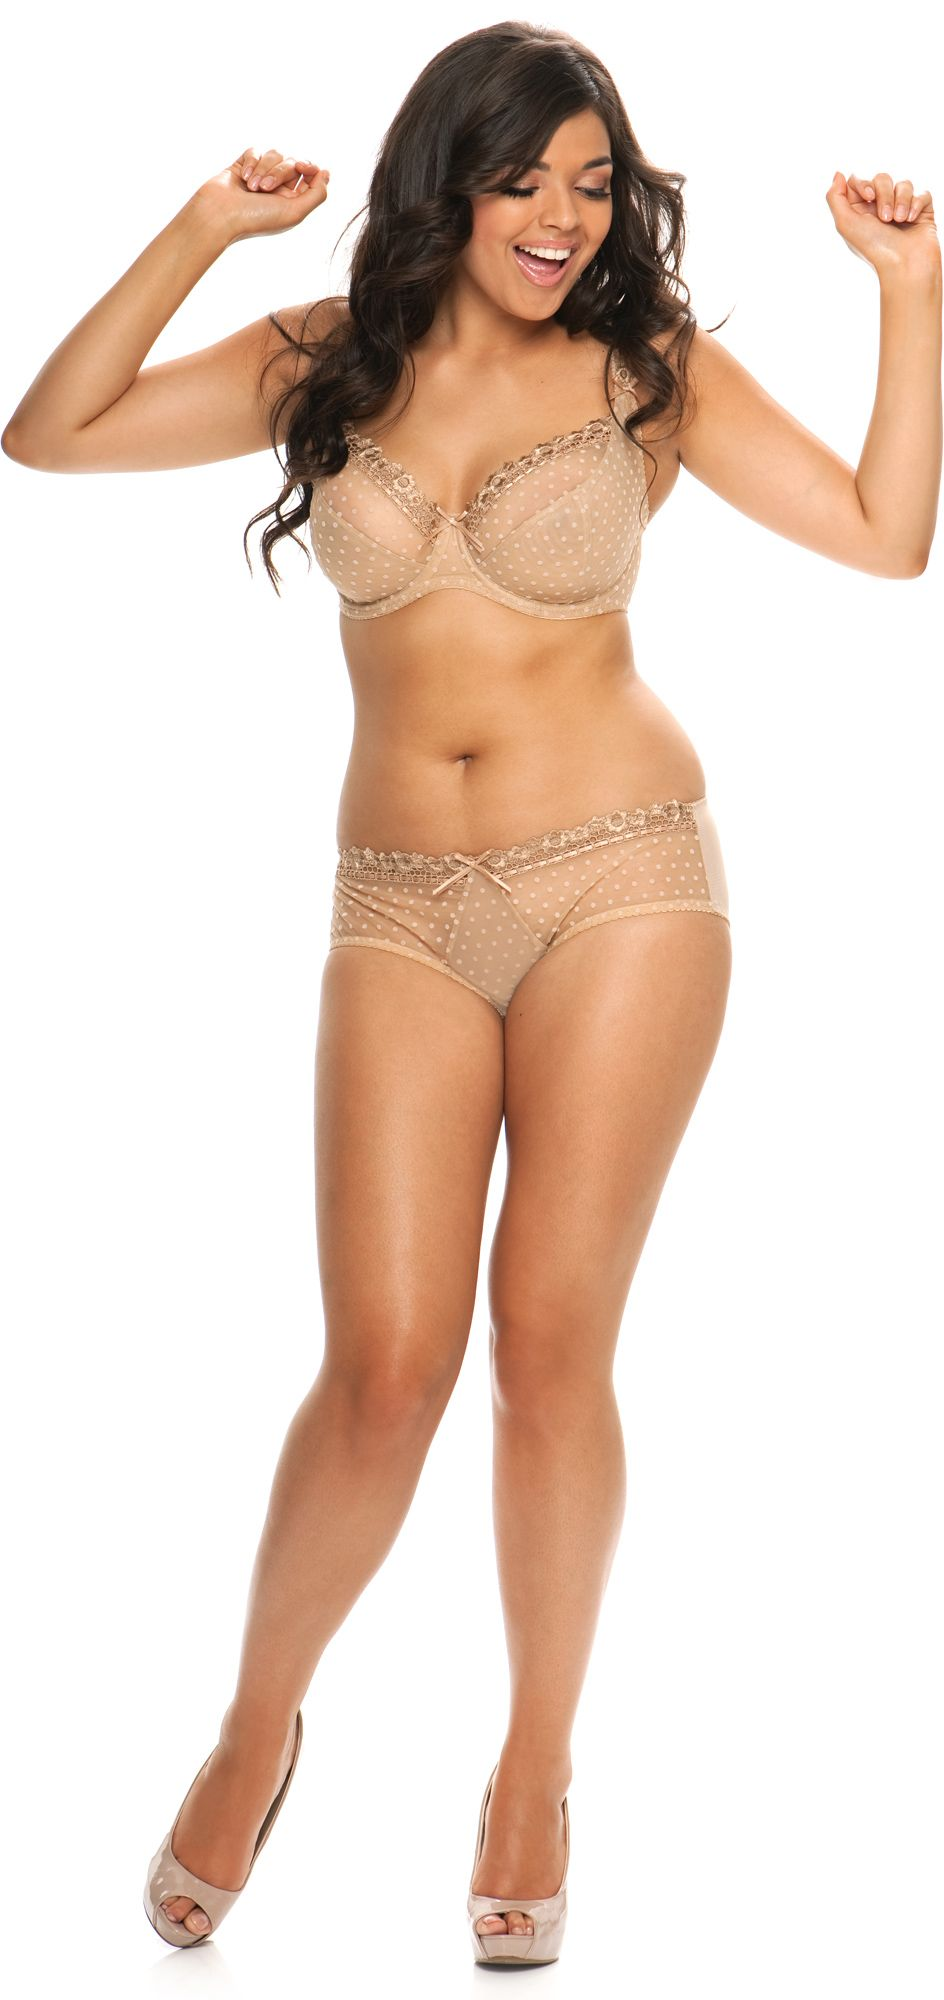 b2f4365b57992 Curvy Kate Princess balcony bra in beige